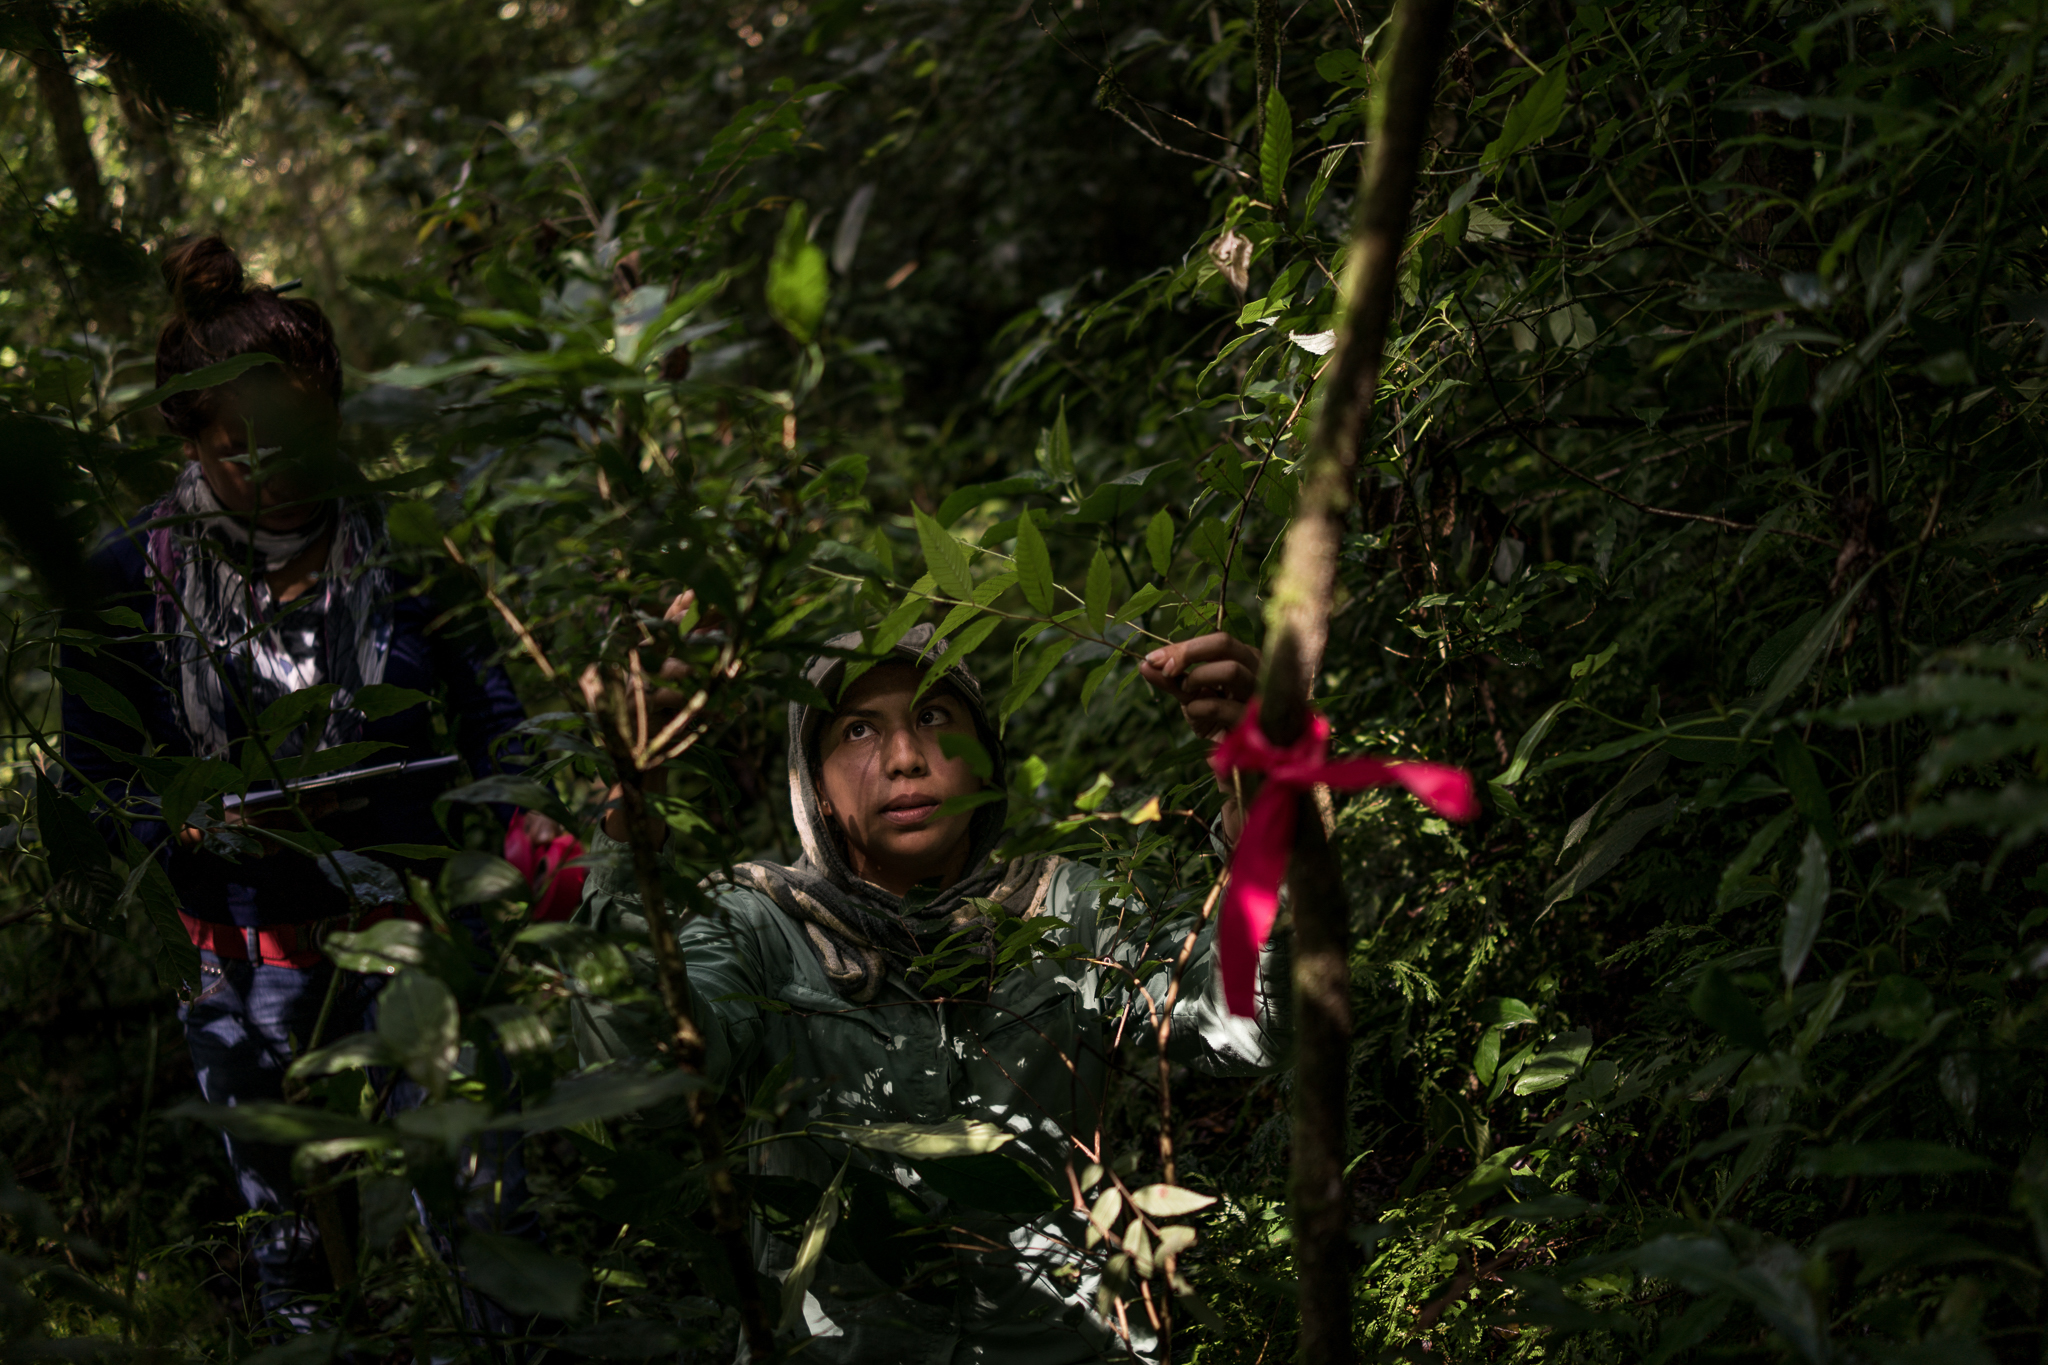 Research students from Mexico's Institute for Ecology in Xalapa, Veracruz study trees replanted in an area of cloud forest once heavily deforested.